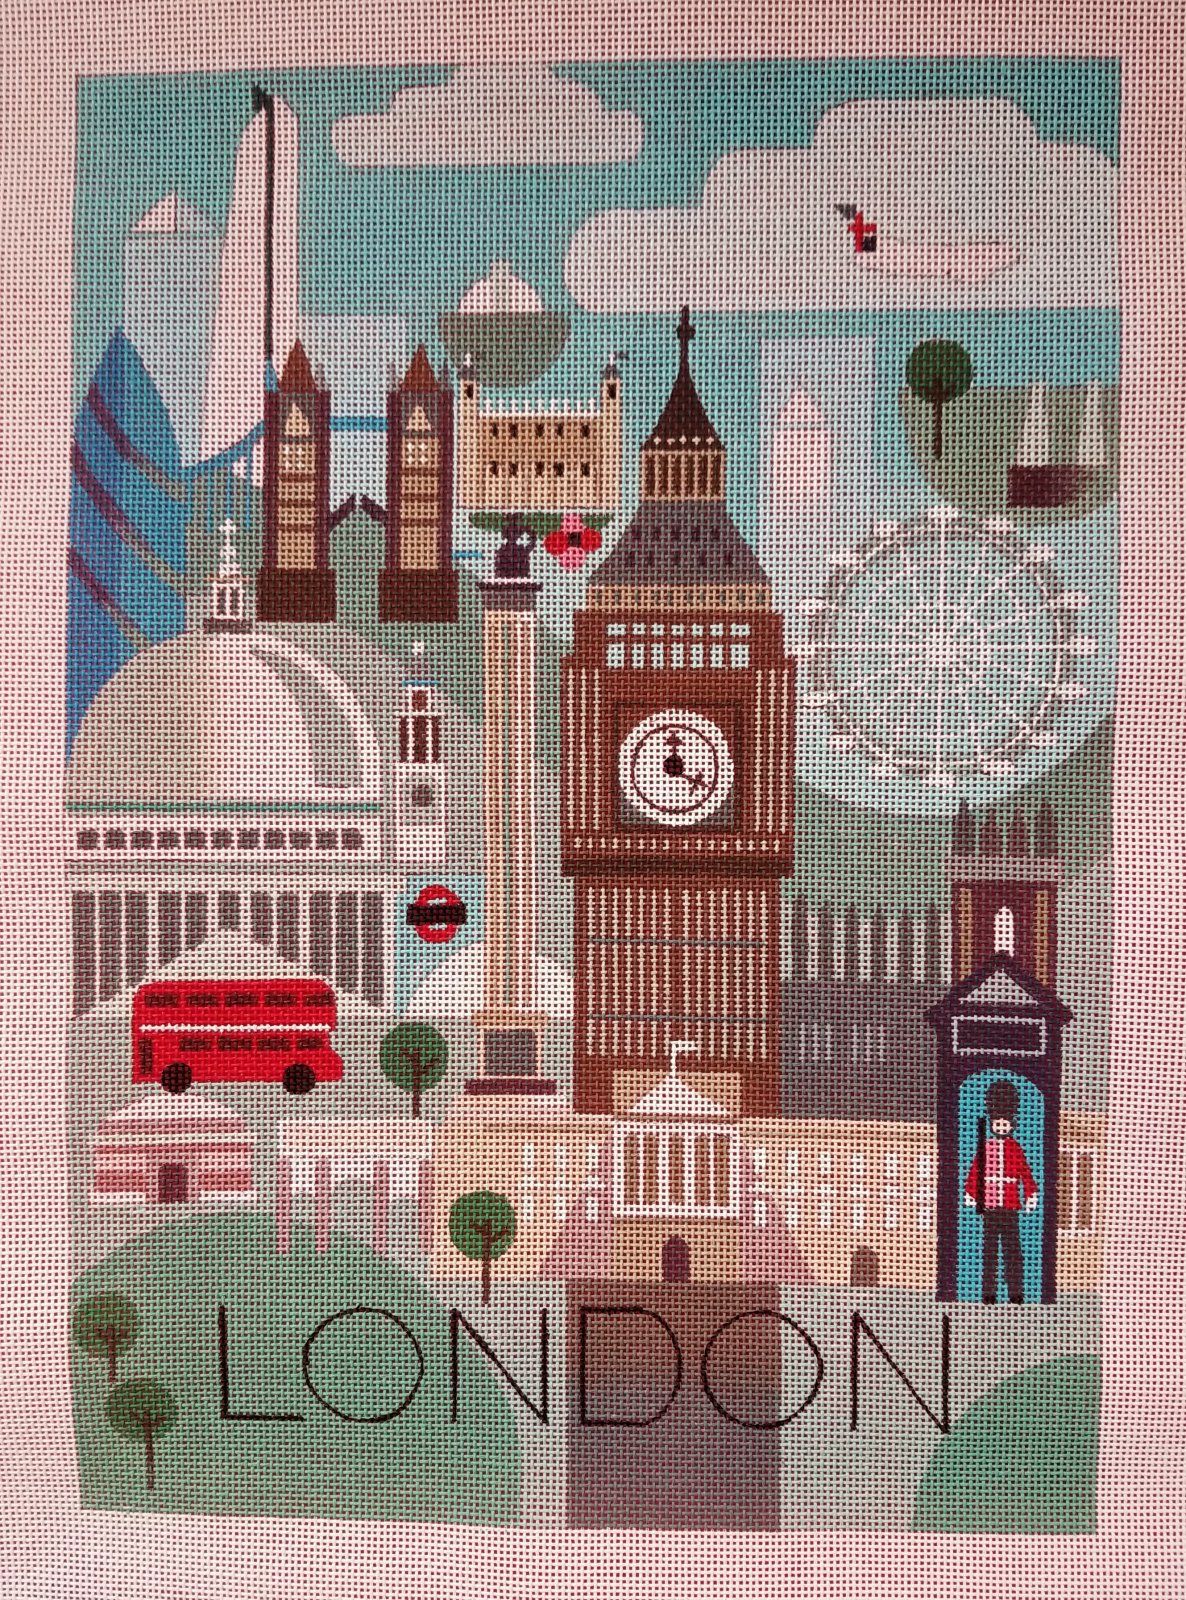 London-World Travel Posters